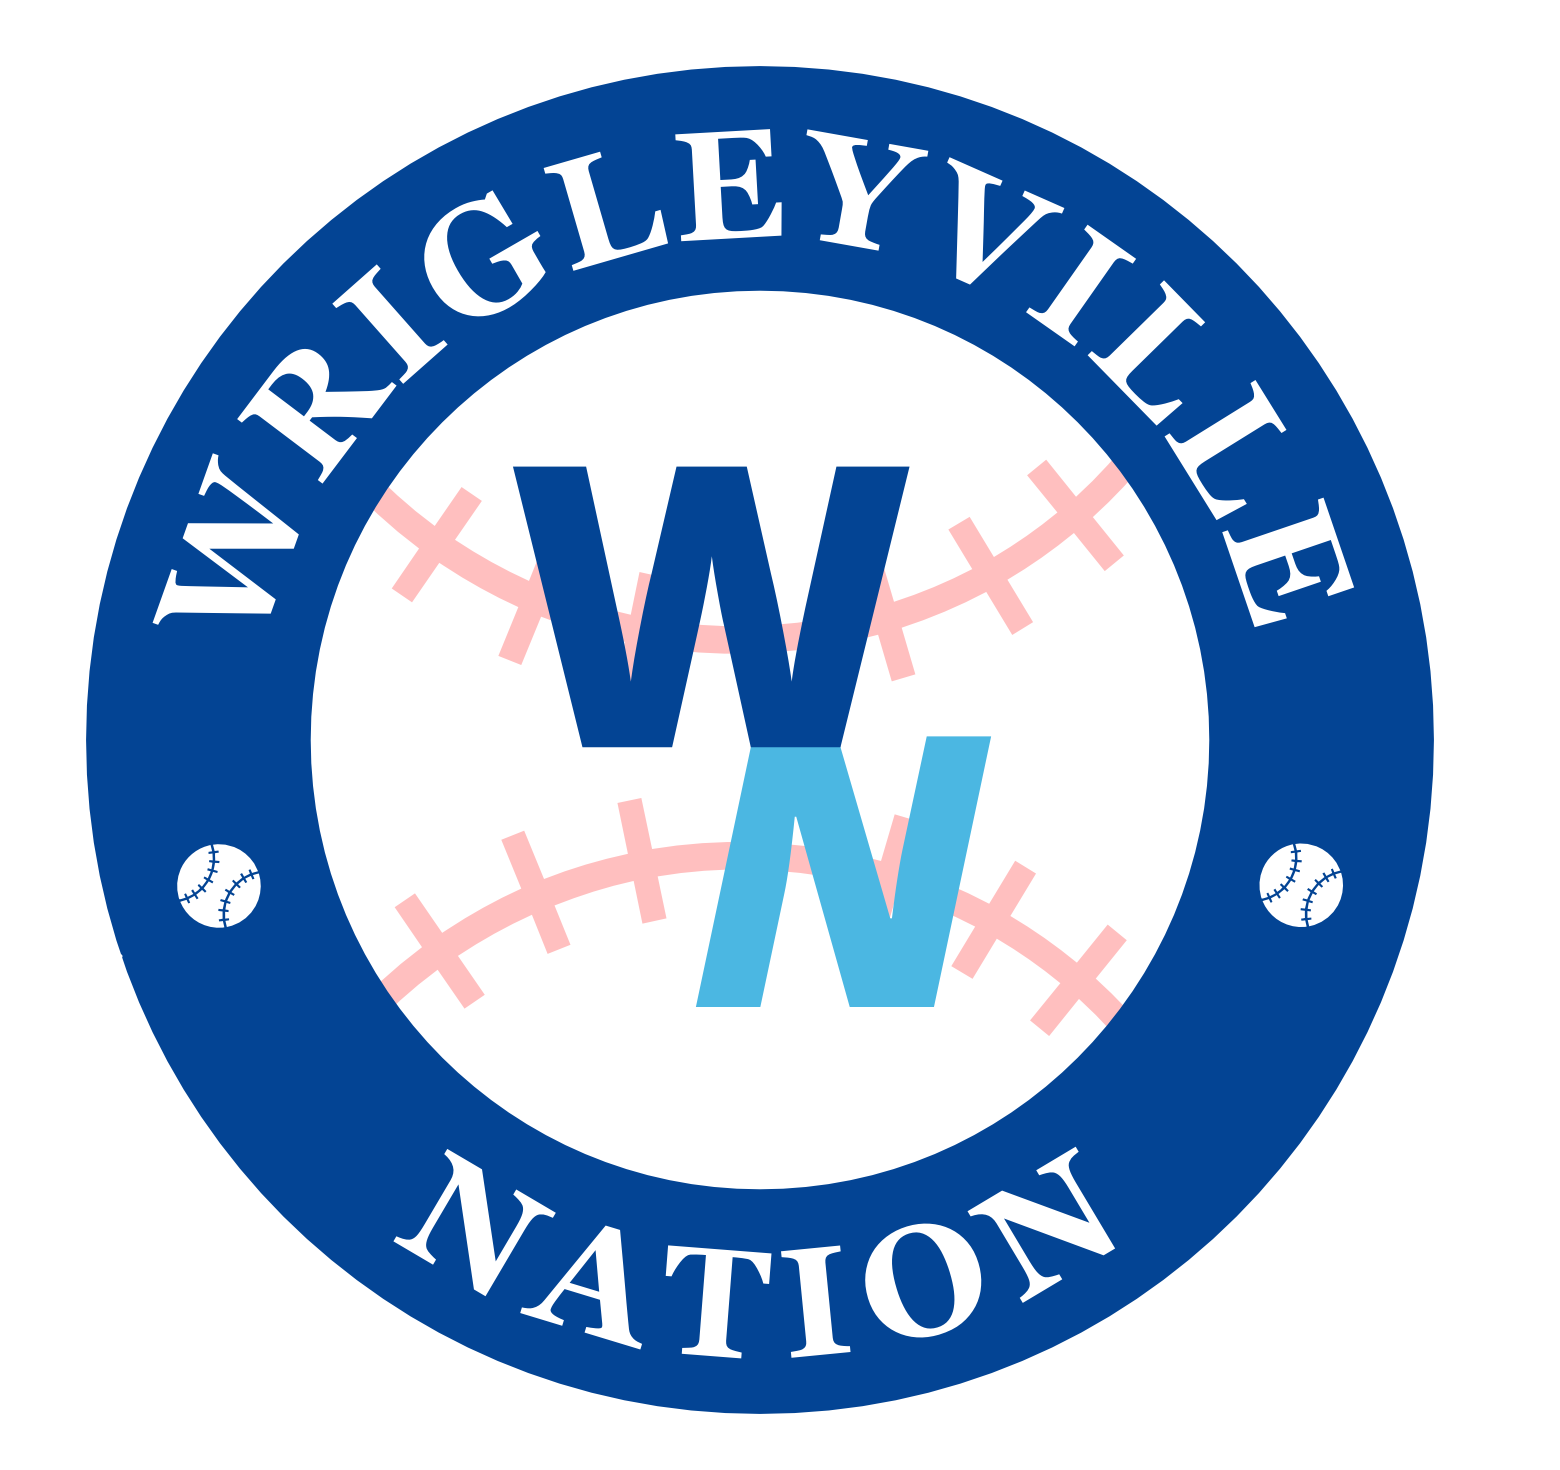 Wrigleyville Nation Ep 227 - Guest: James Neveau, Cubs Bullpen Concerns, Javy Love, Cardinals COVID outbreak, & More show art